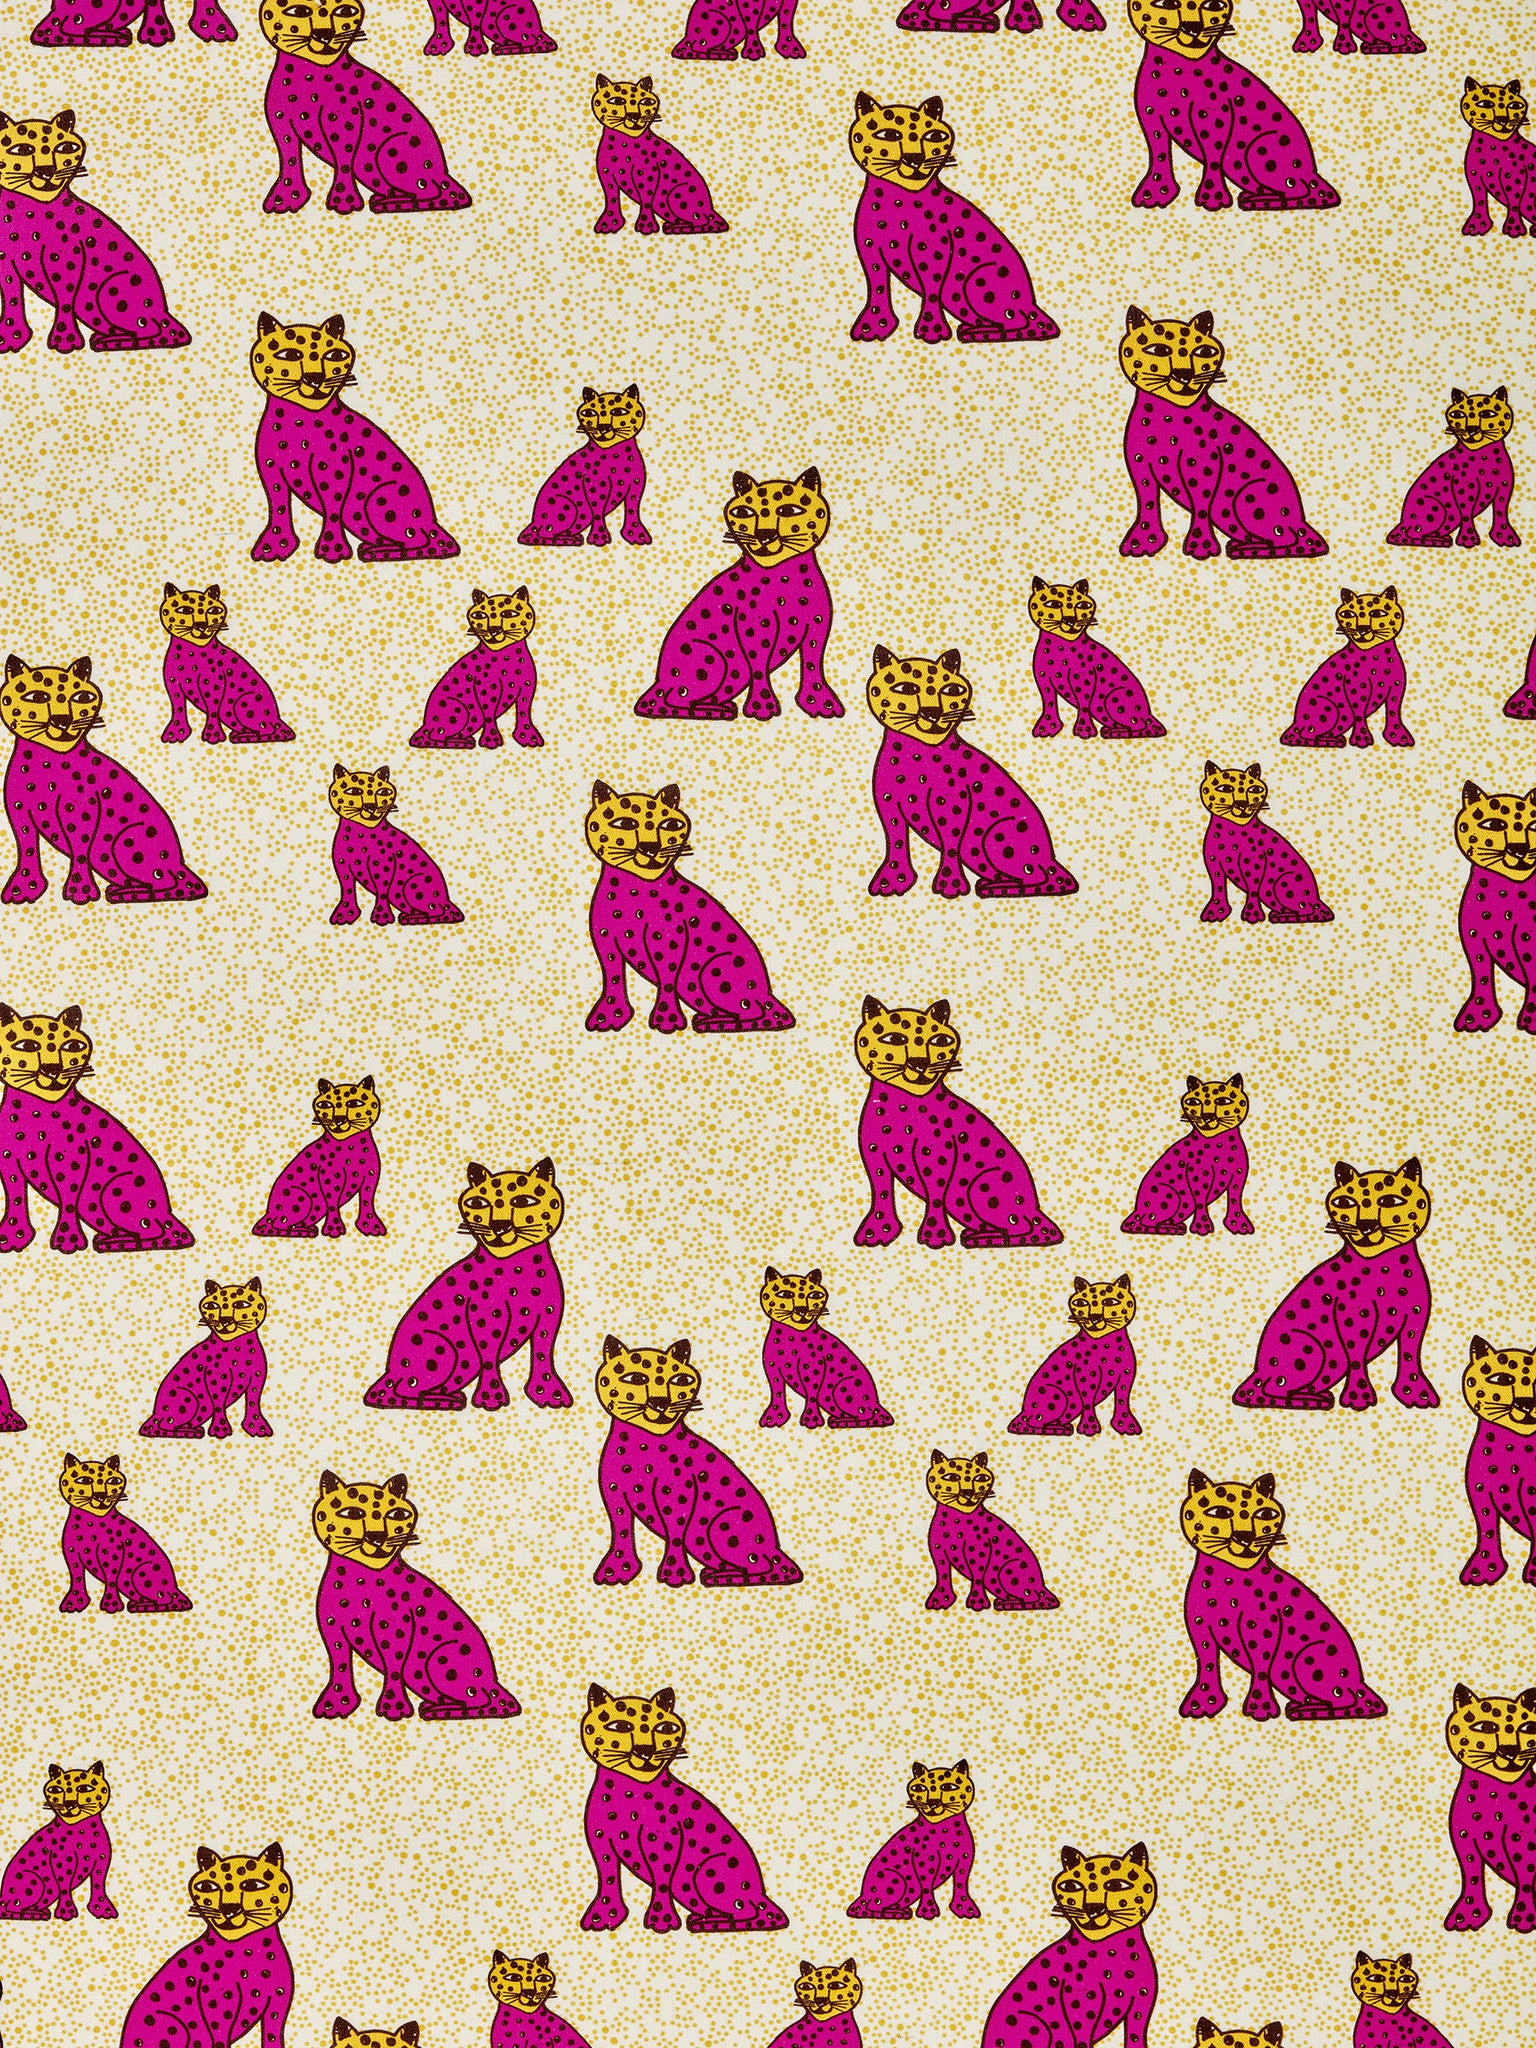 Graphic Leopard Pattern Printed Linen Cotton Canvas Fabric in Fuchsia Pink & Mustard Yellow